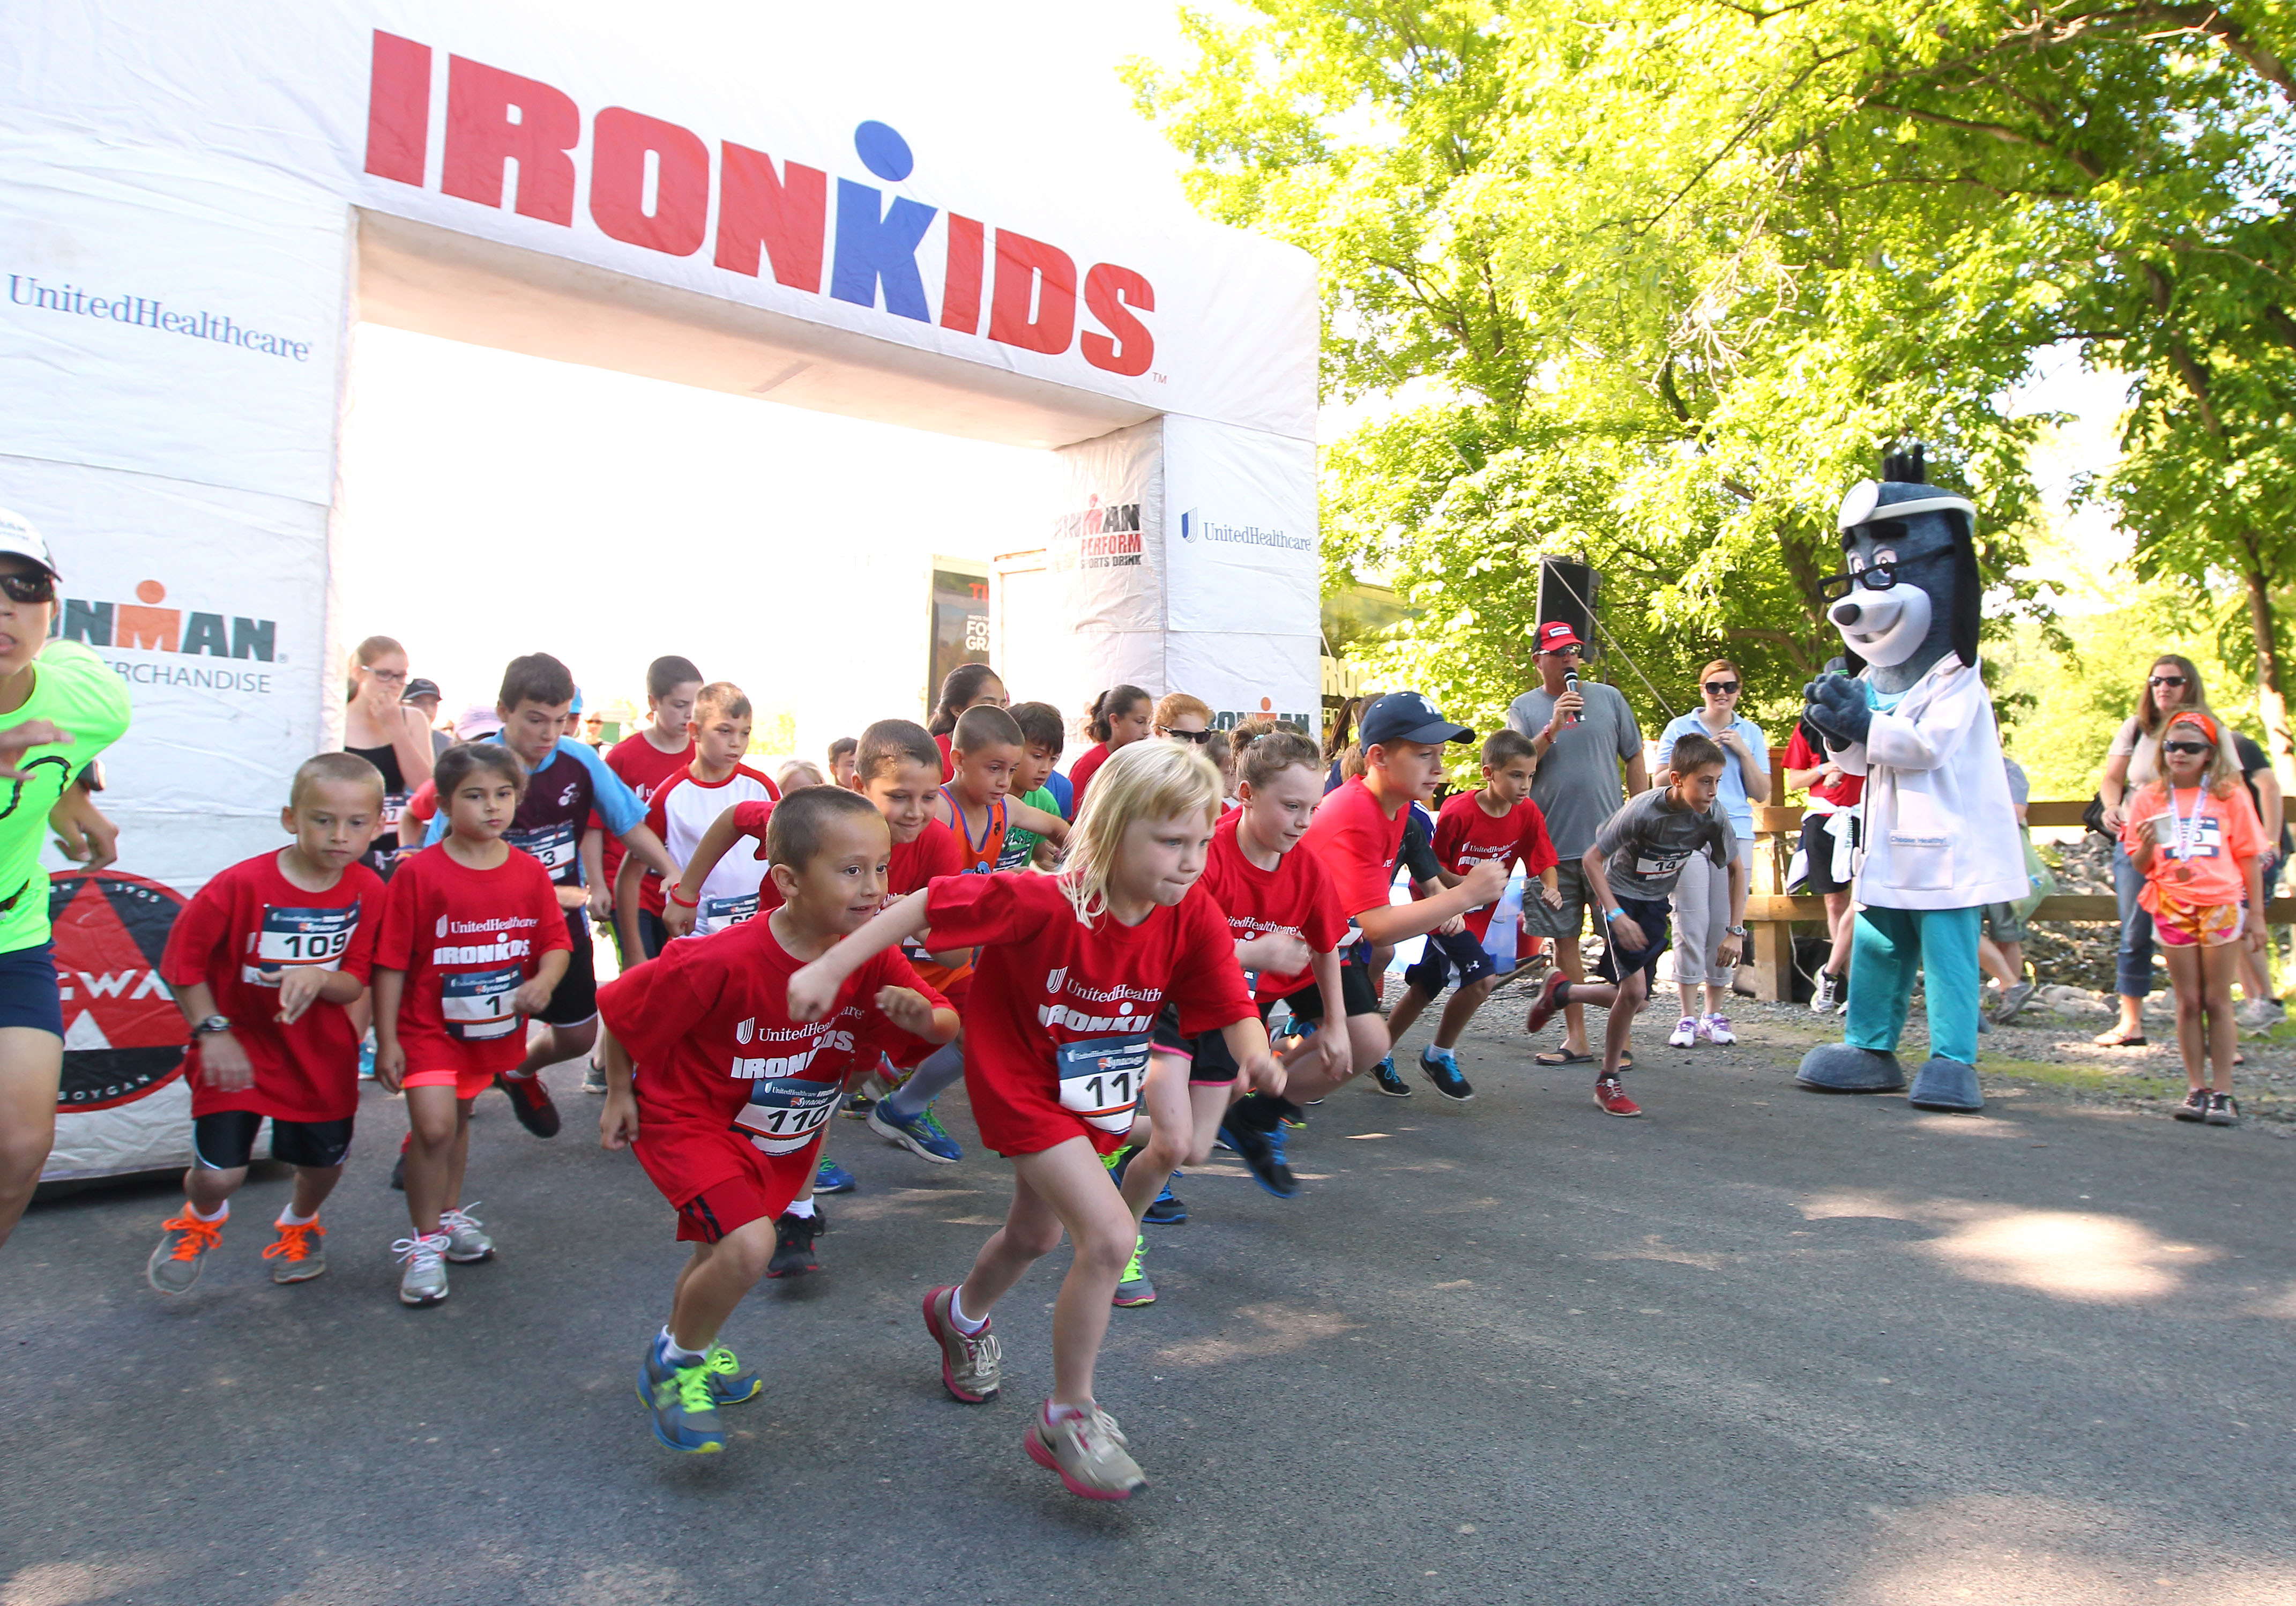 "UnitedHealthcare mascot Dr. Health E. Hound is pictured at the finish line of the UnitedHealthcare IRONKIDS Syracuse Fun Run at Jamesville Beach Park today. Nearly 100 youth participated in the race for ""triathletes to be."" Photo Credit: Michael J. Okoniewski"